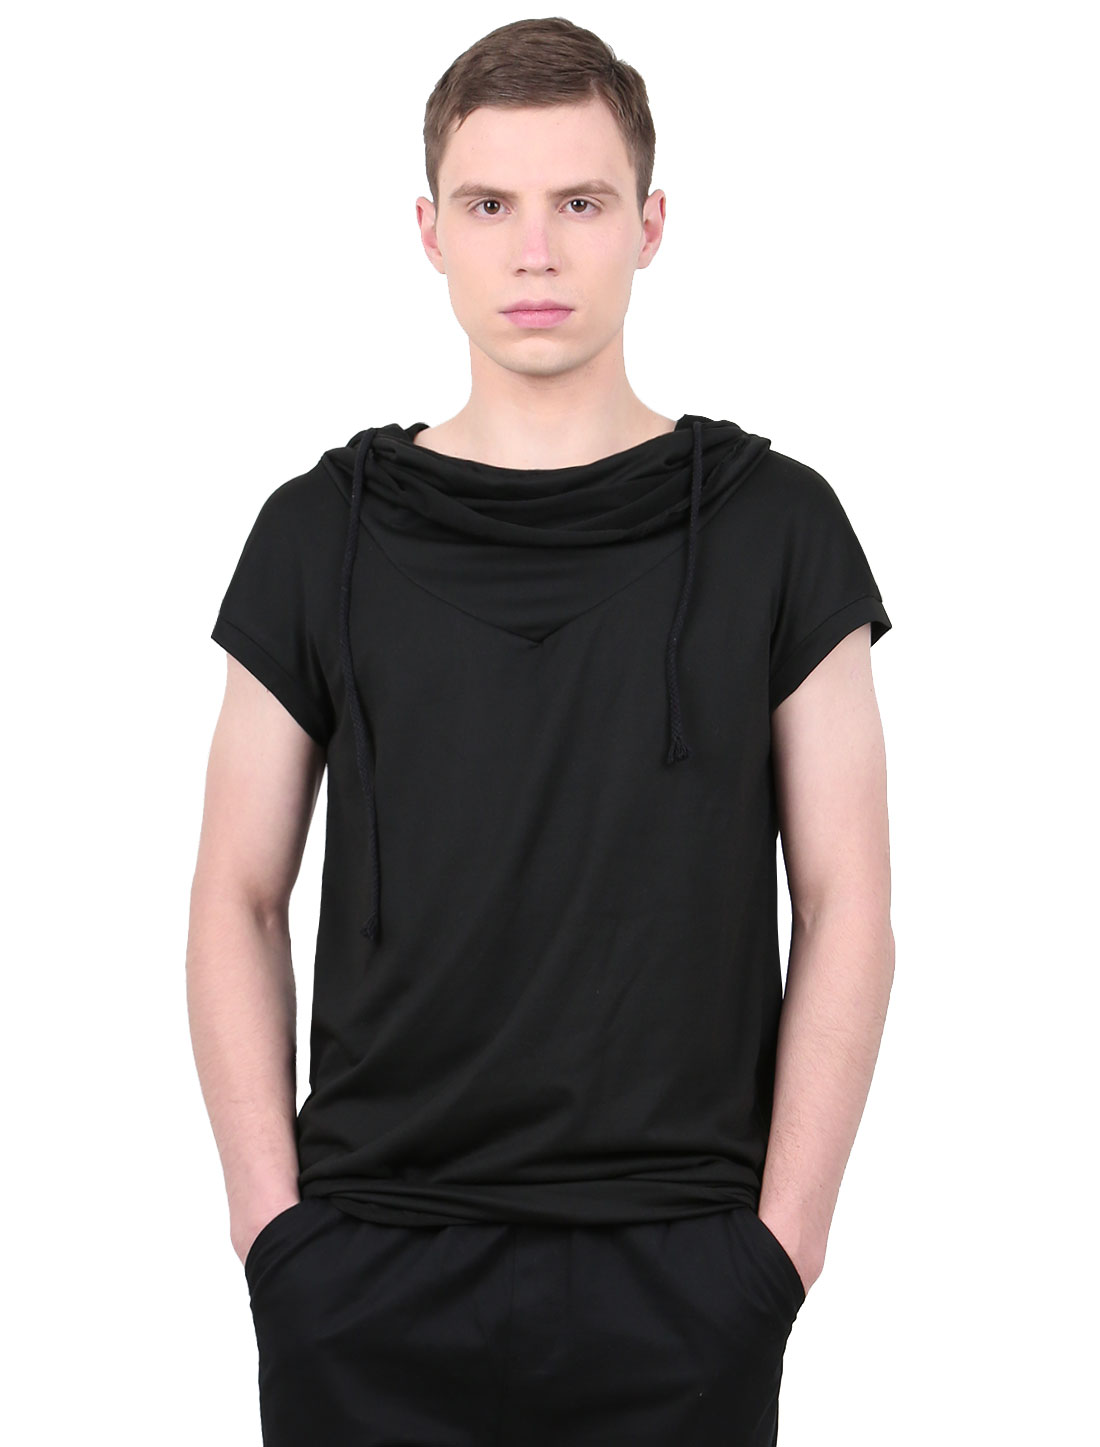 Men Cowl Neck Short Sleeve Drawstring Casual Hooded T-Shirt Black M